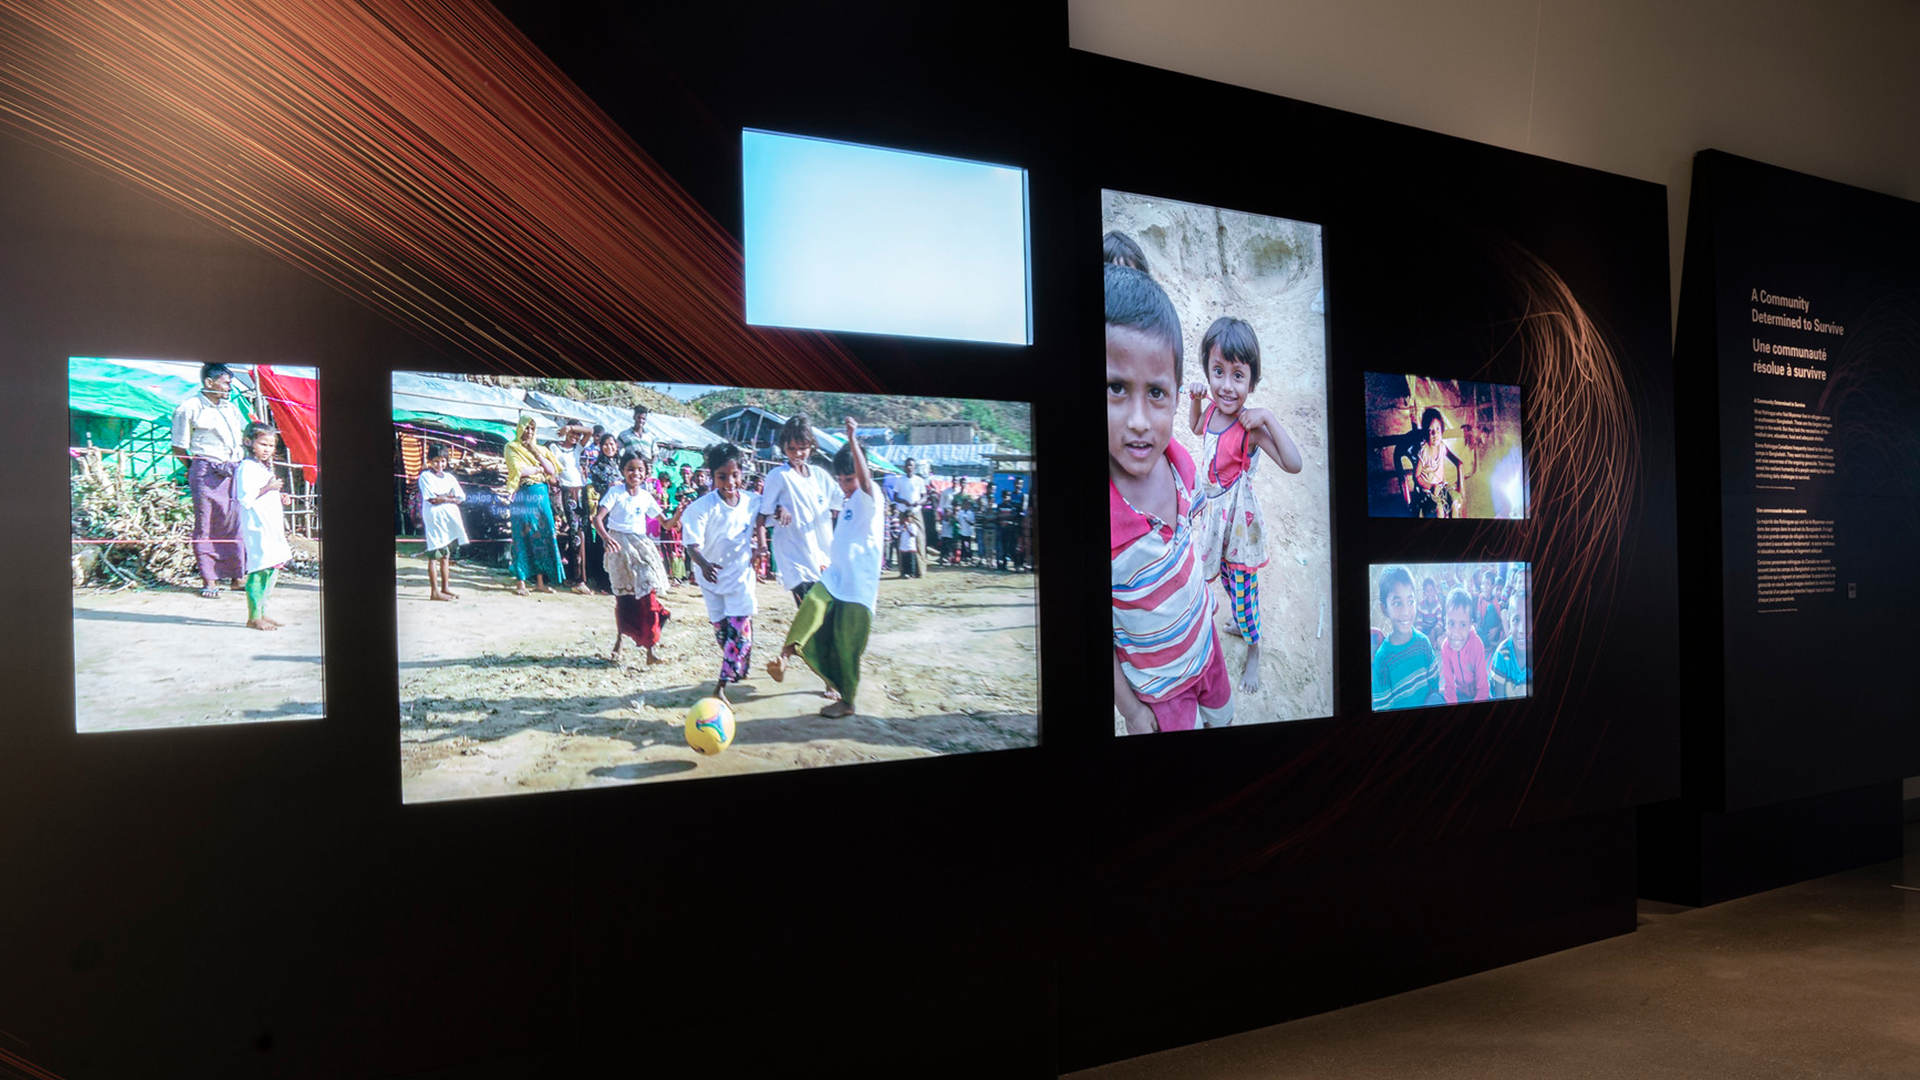 A section of wall with a series of screens in both portrait and landscape orientations are depicting scenes of refugee camps